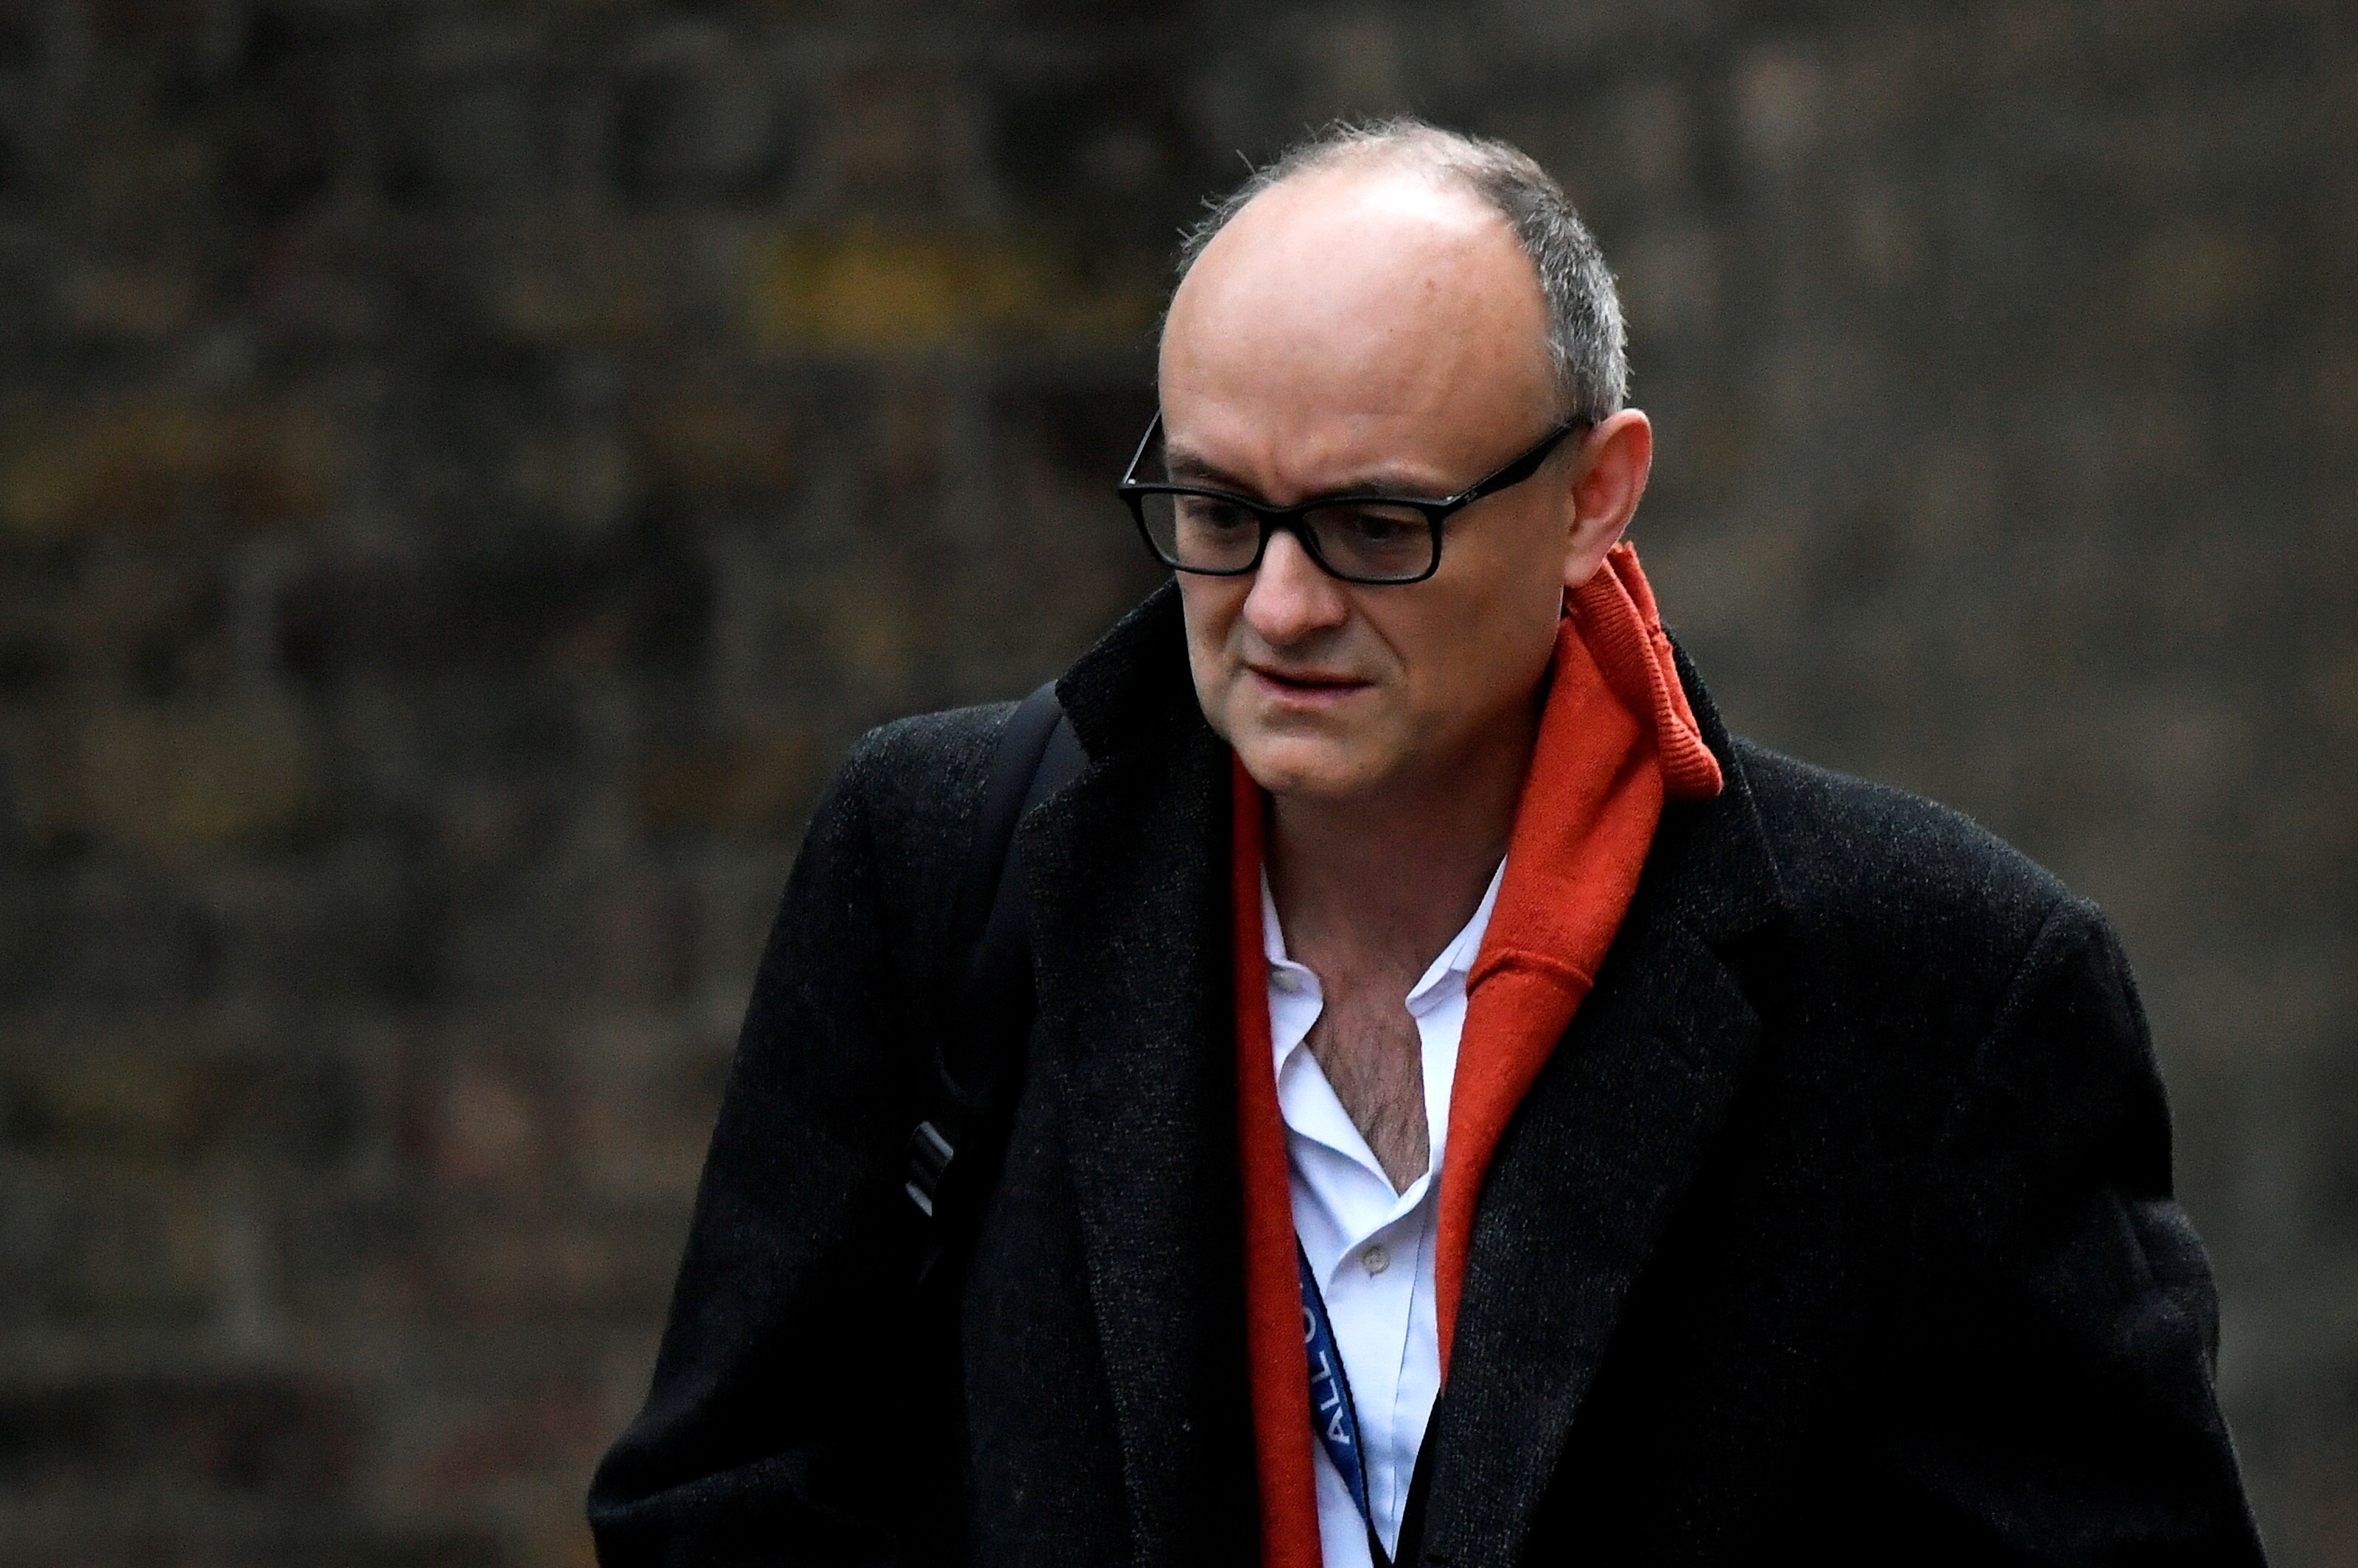 Dominic Cummings, former special adviser for Britain's Prime Minister Boris Johnson, arrives at Downing Street, in London, Britain, November 13, 2020. REUTERS/Toby Melville